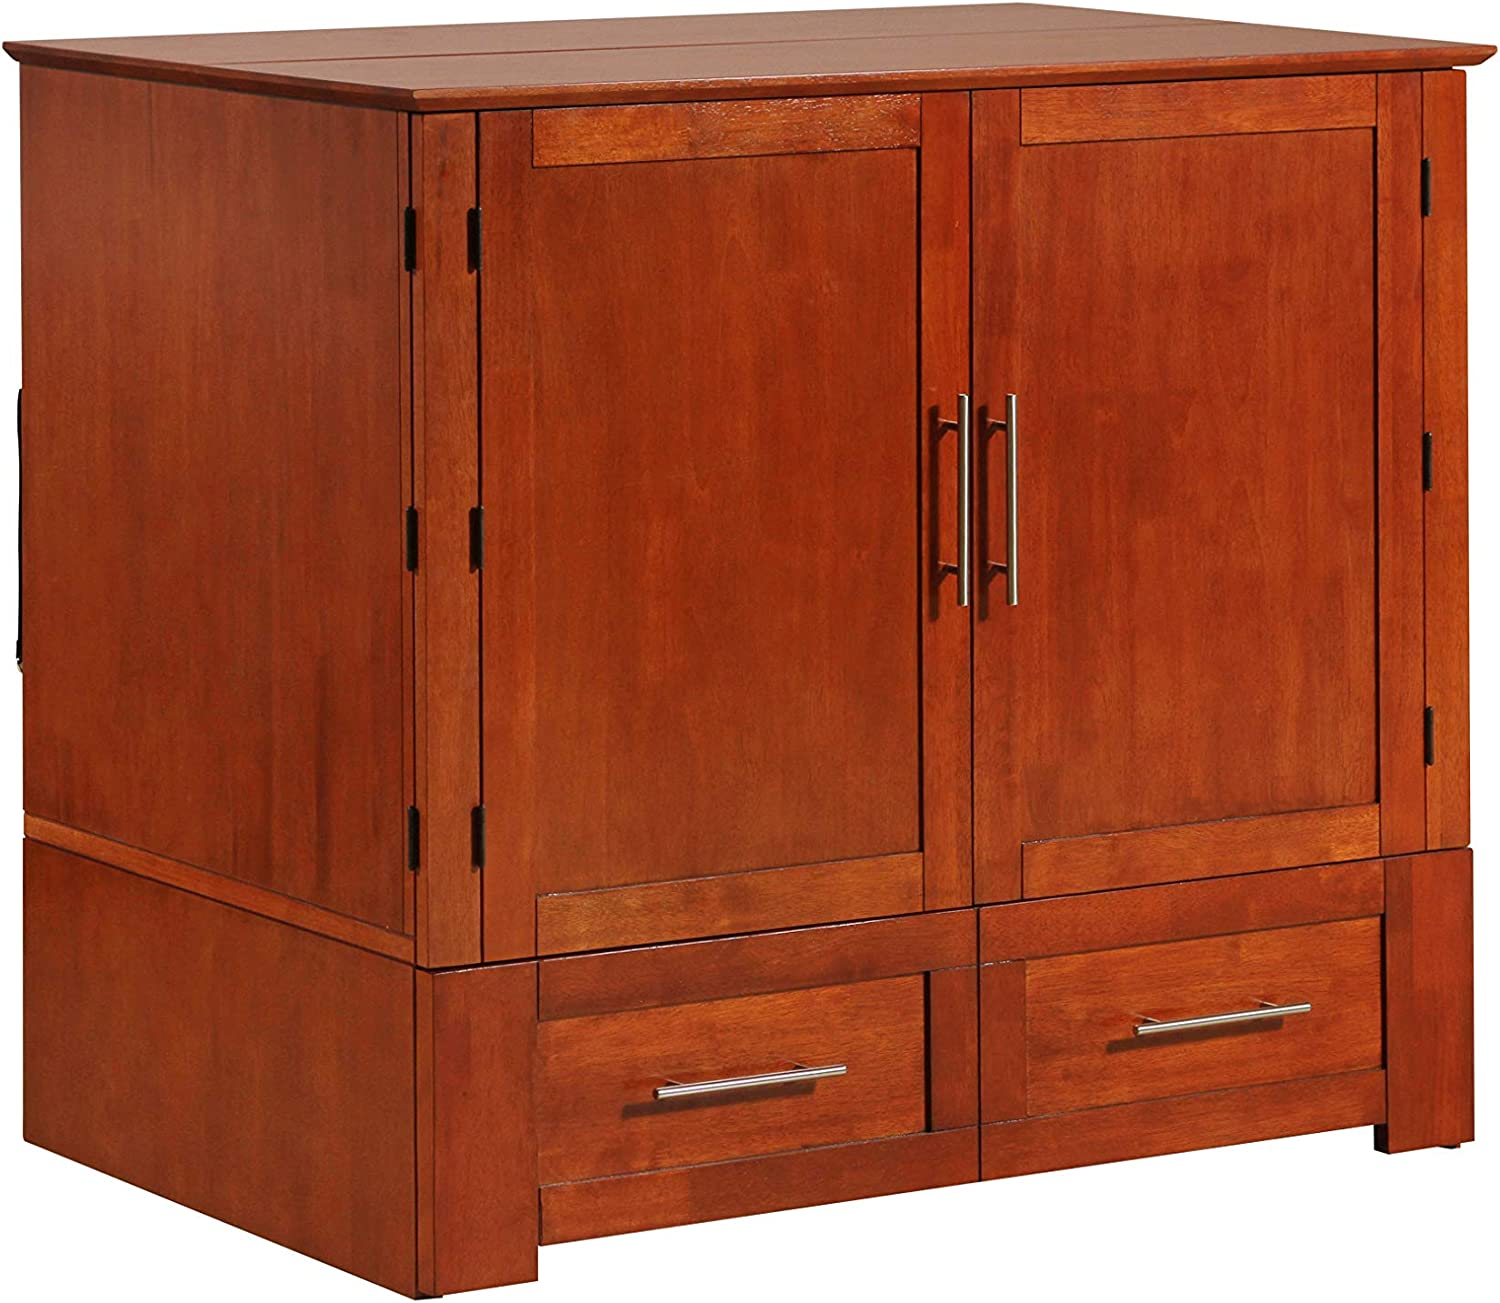 Emurphybed Daily Delight Murphy Cabinet Chest Bed with Charging Station & 6